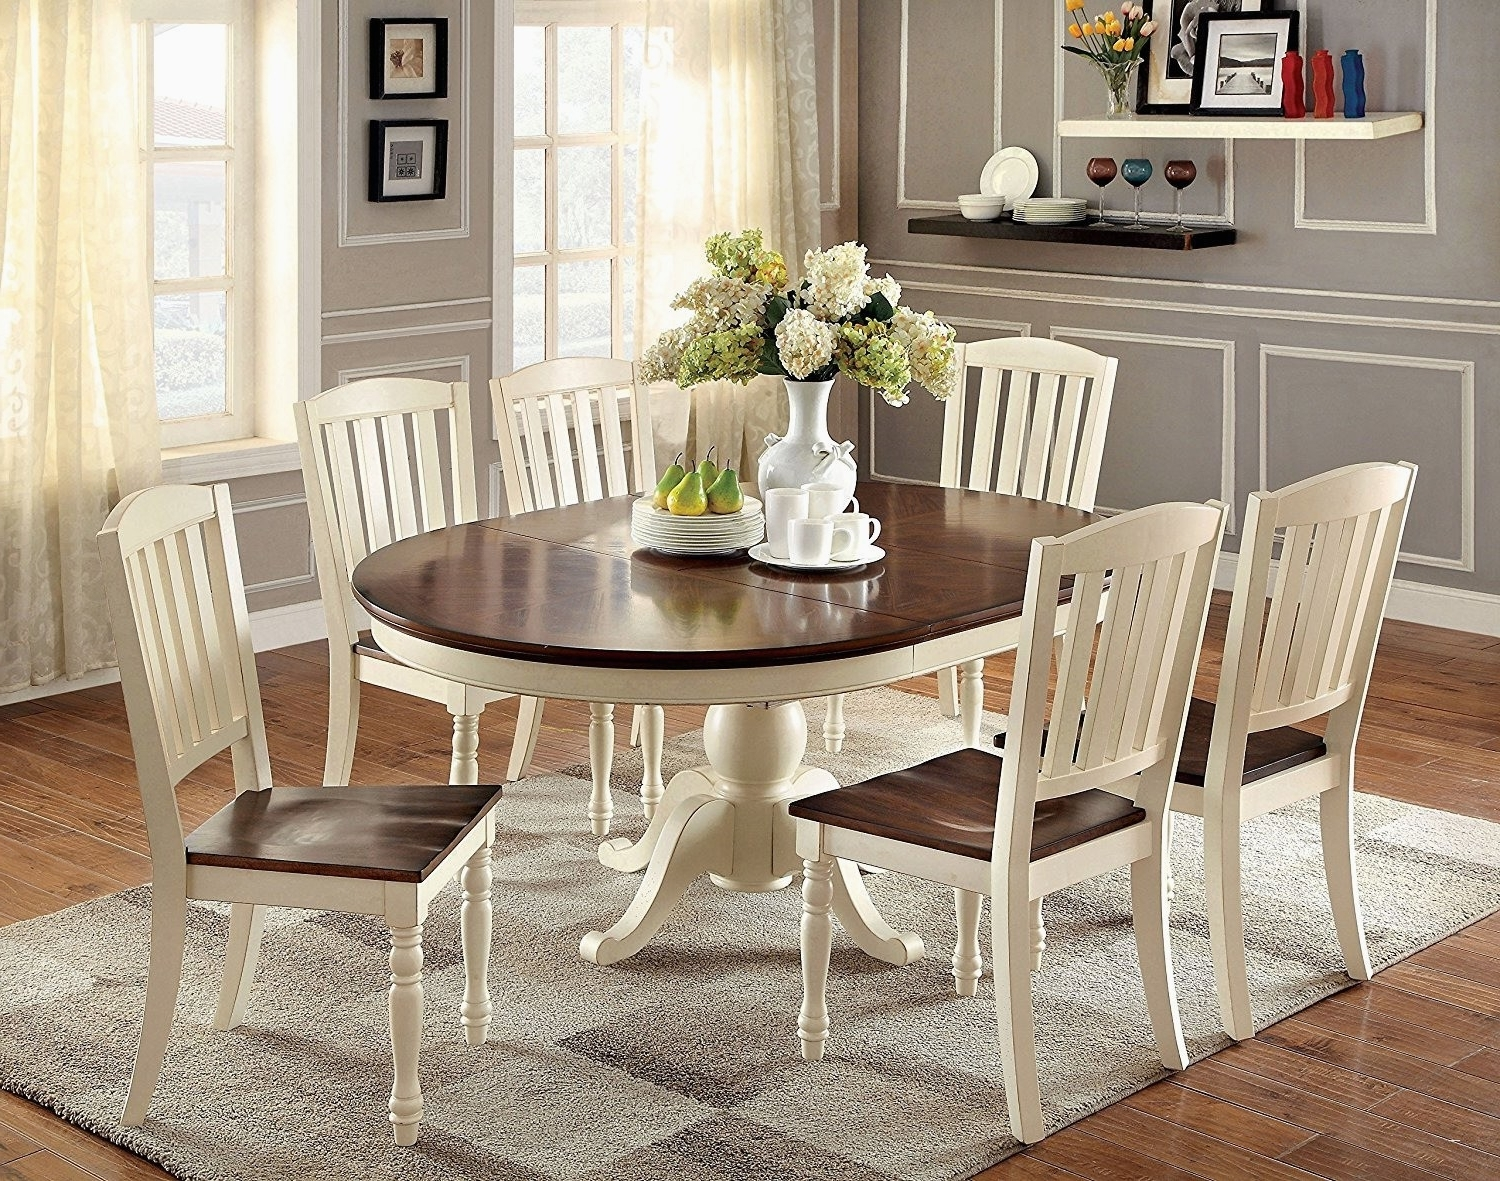 Six Chair Dining Table New Amazing 6 Chair Dining Table Set Virginia With 2017 6 Seater Round Dining Tables (View 23 of 25)